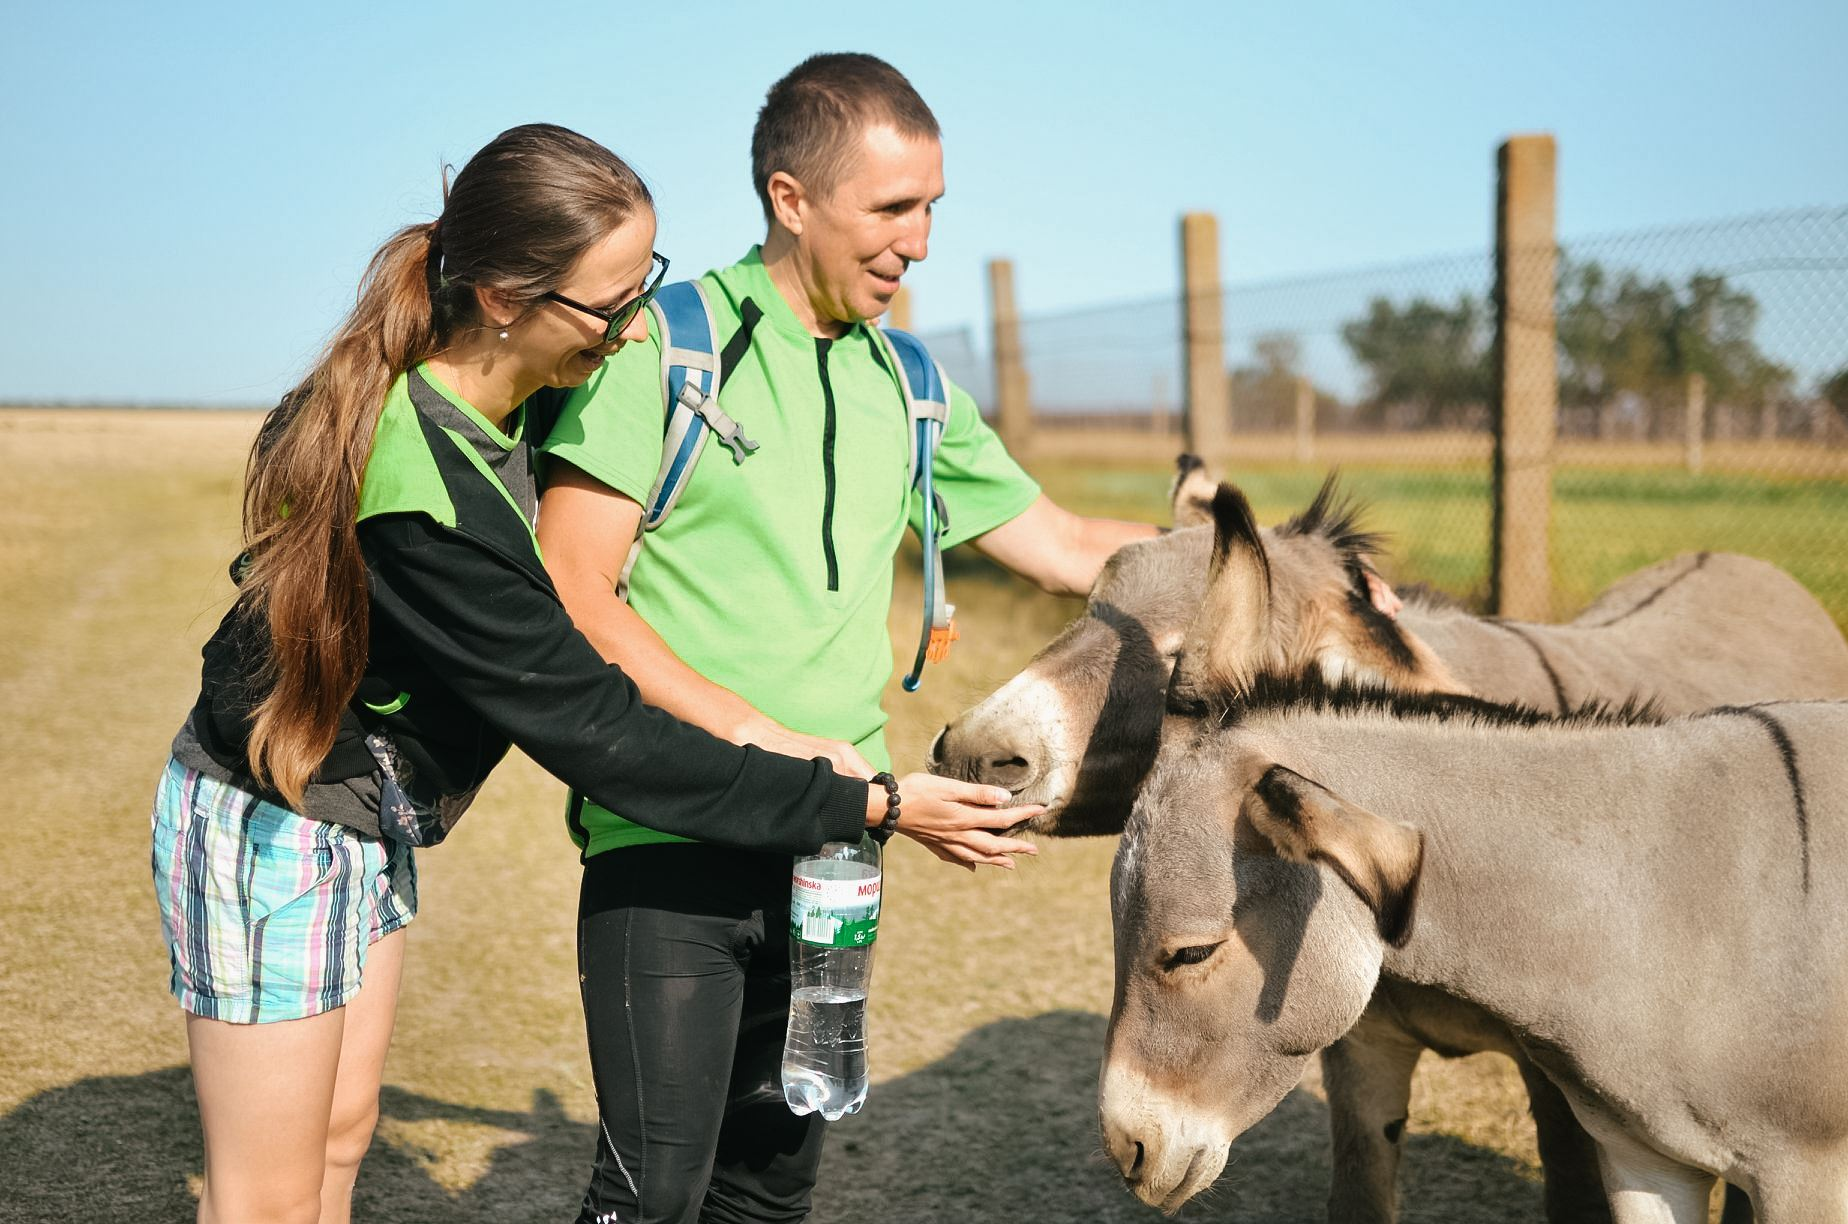 A woman and a man are petting two brown donkeys. The people are smiling. The man is holding a water bottle in his right hand. The woman is wearing sunglasses.